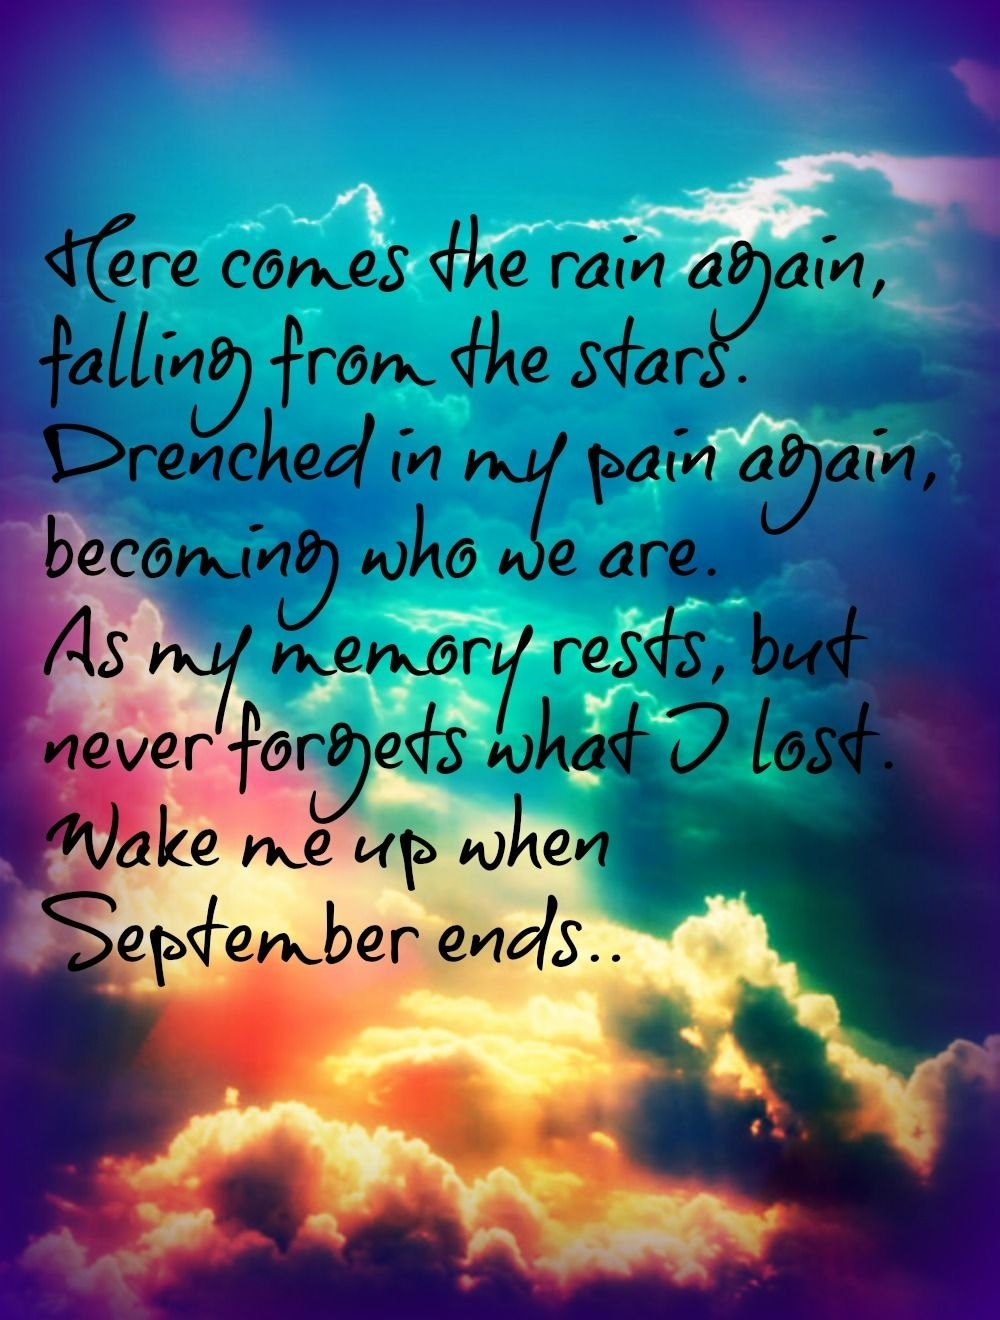 September Ends Quotes